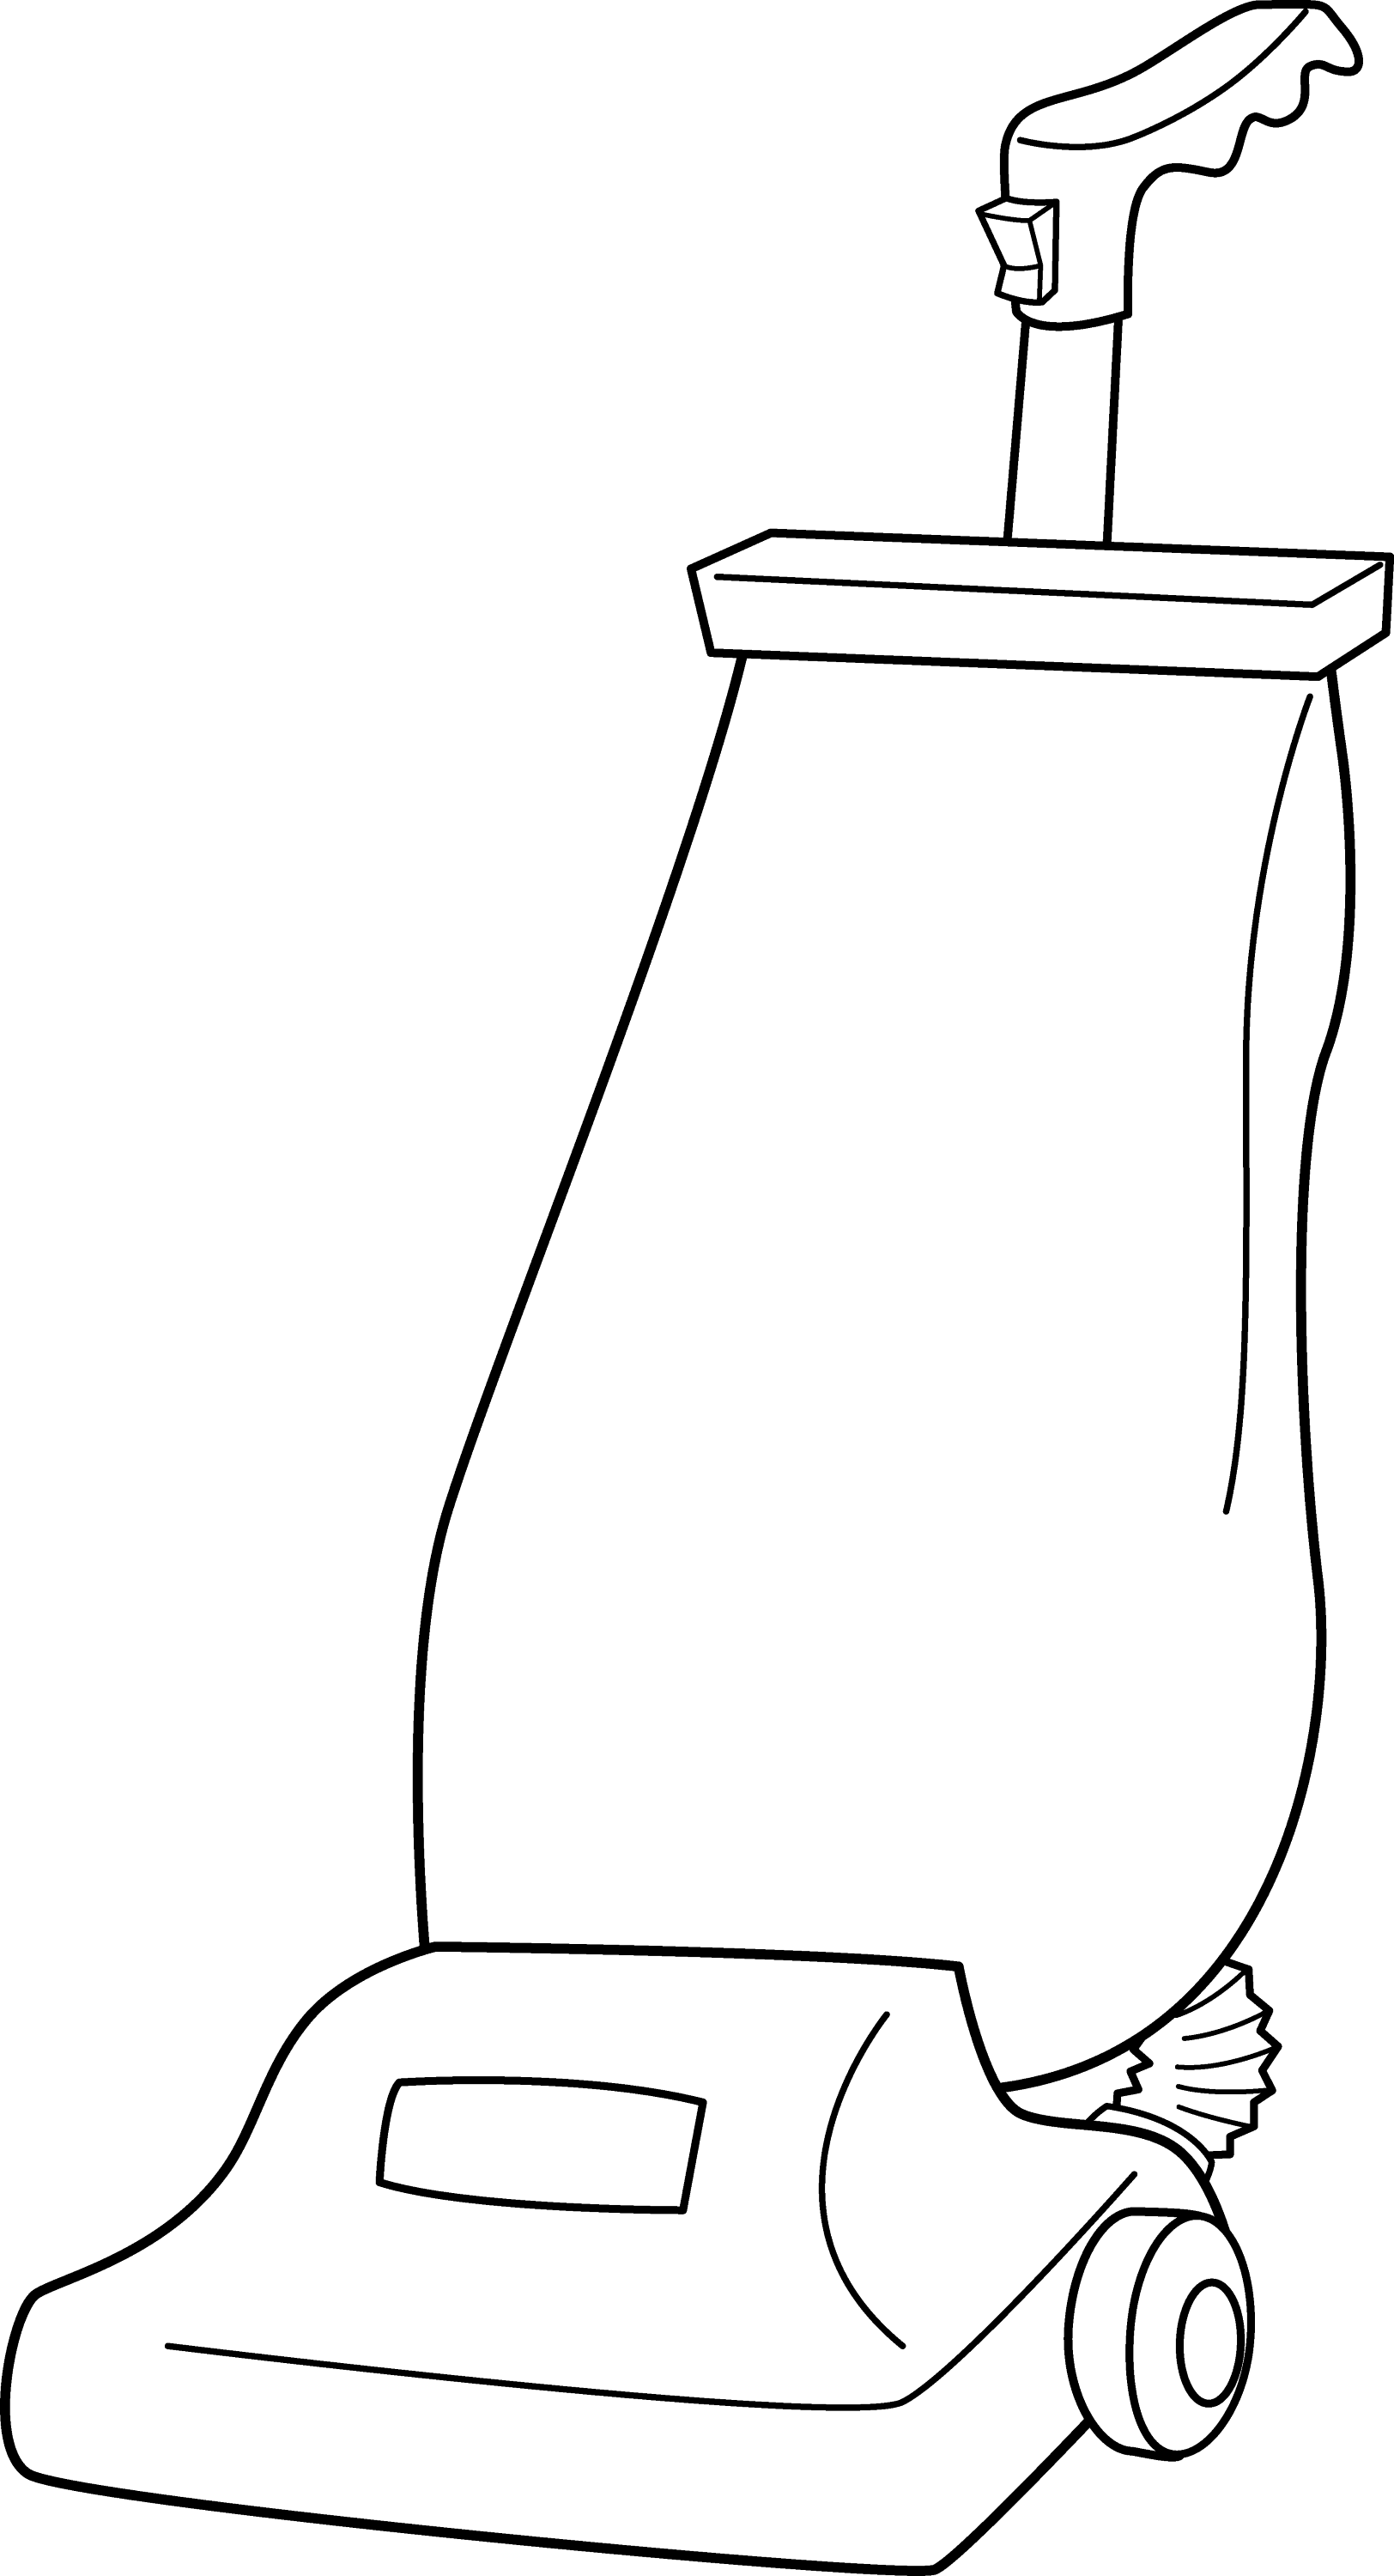 Vacuum cleaner clipart vacuum cleaner clip art - Vacuum Cleaner Line Art